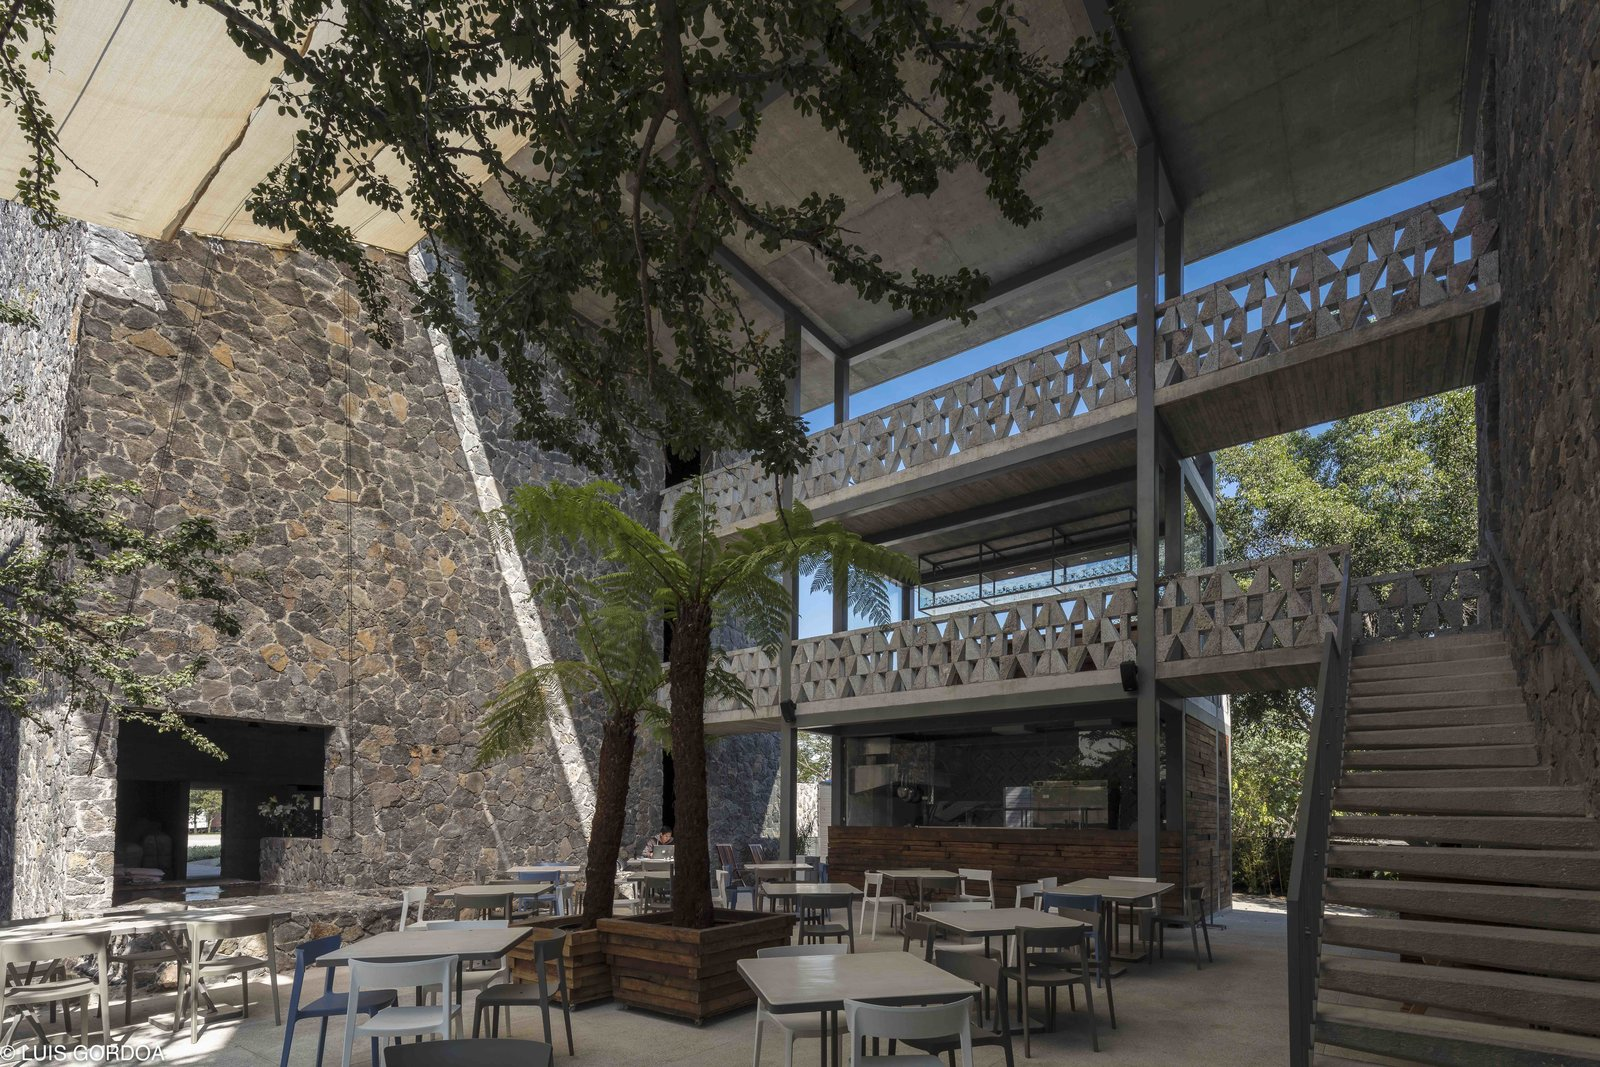 Photo 1 of 12 in A New Hotel in Morelos Combines Local Mexican Elements With Brutalist Architecture